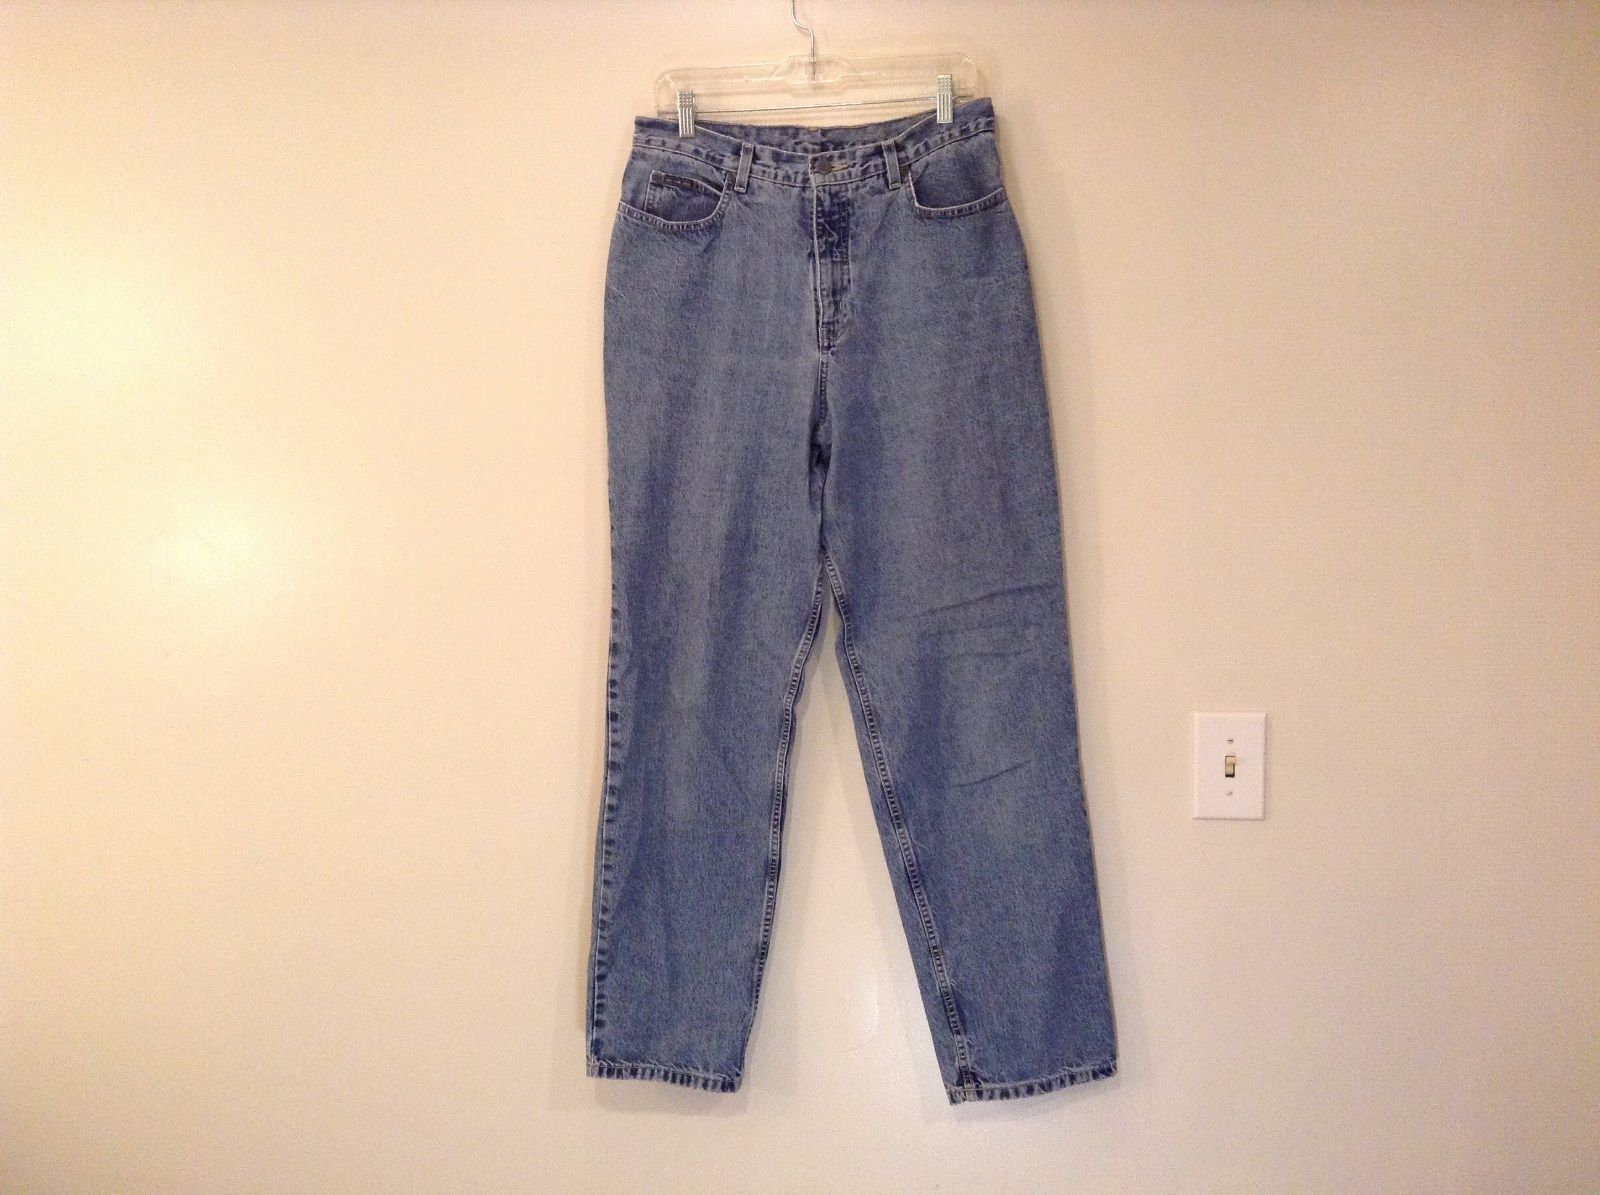 New York and Company Blue Denim Jeans 100 Percent Cotton Size 12 Tall